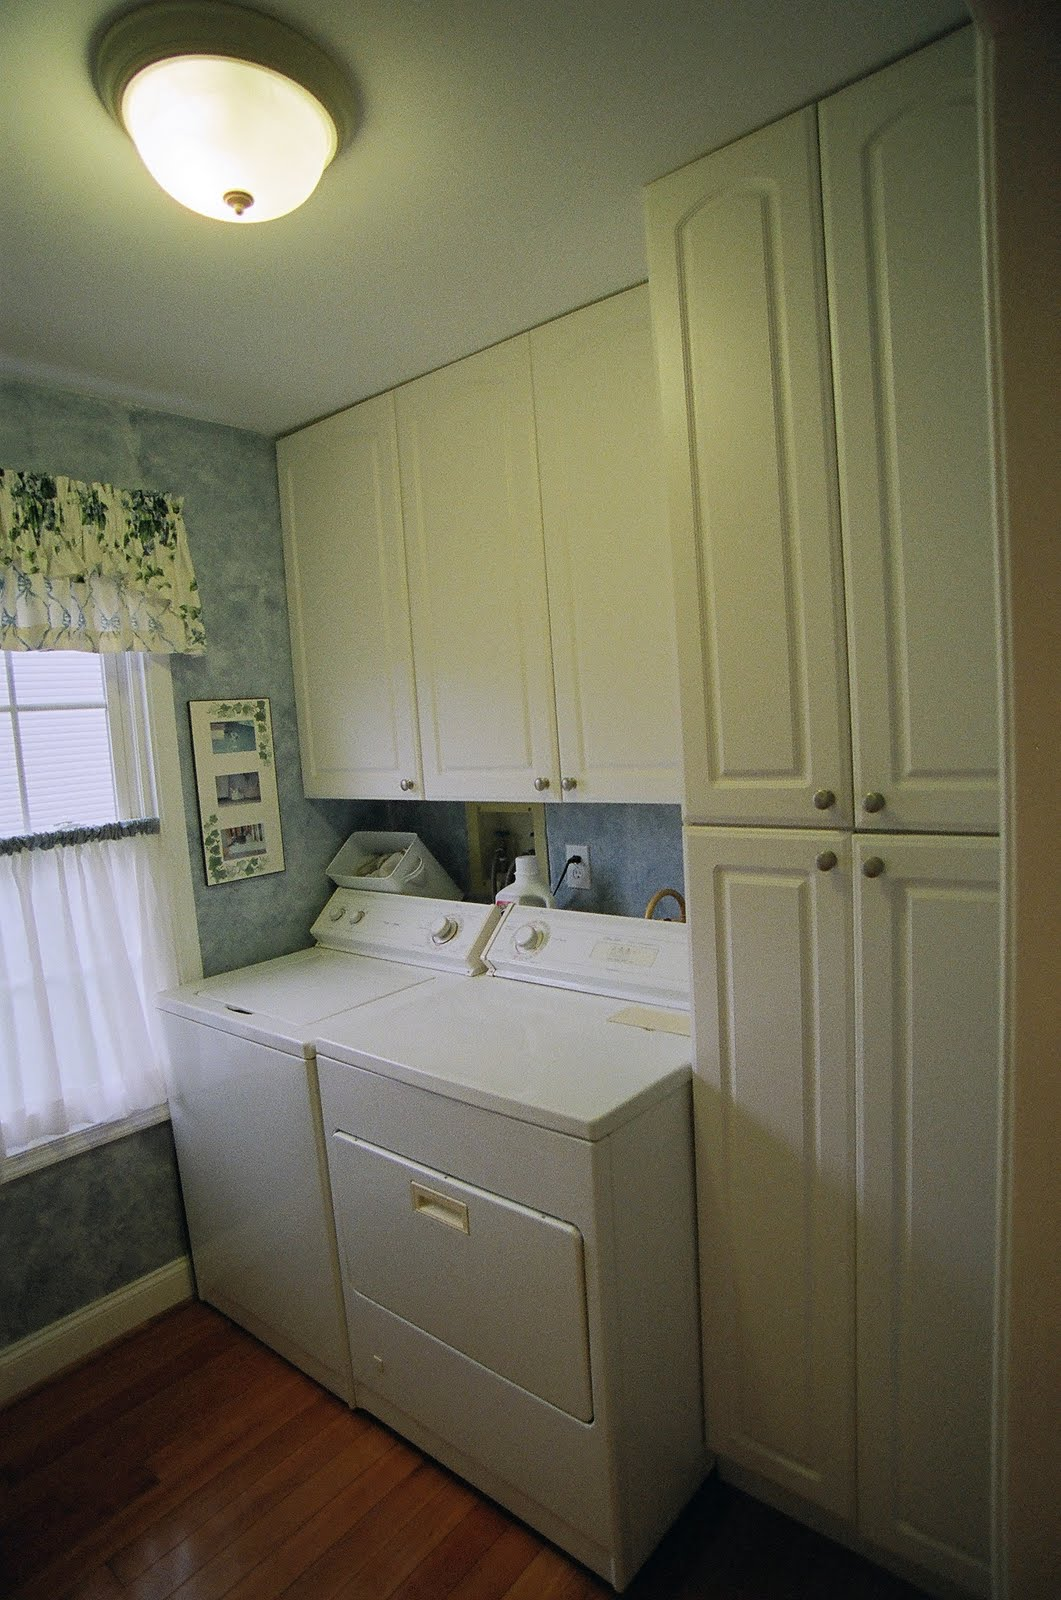 Perfect Laundry Room With Washer And Dryer (gas). Lots Of Cabinets In The Laundry  Room Including The Large Floor To Ceiling Pantry Cabinet On The Right Hand  Side.